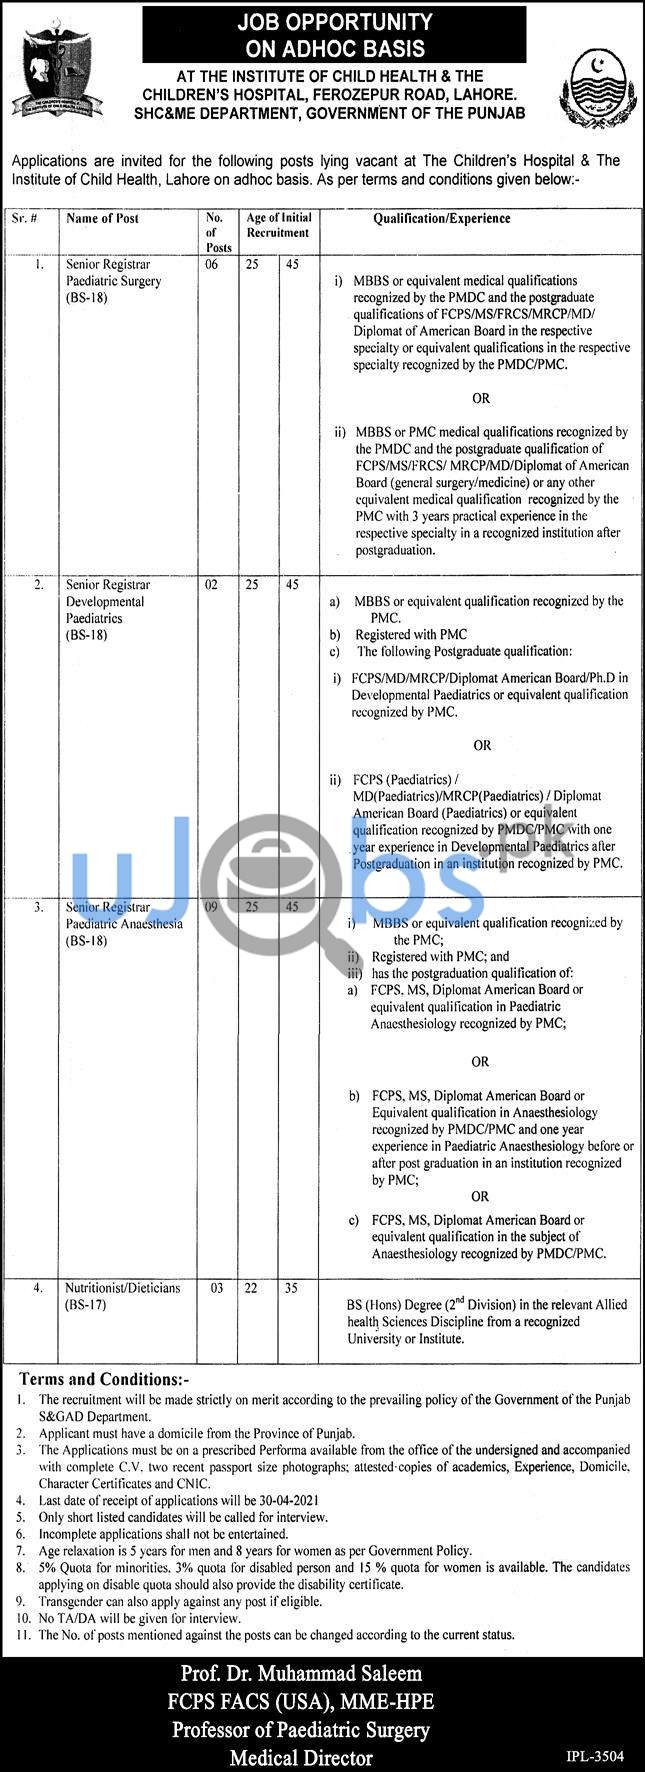 The Children's Hospital and the Institute of Child Health Jobs in Lahore 2021 on ADHOC Basis